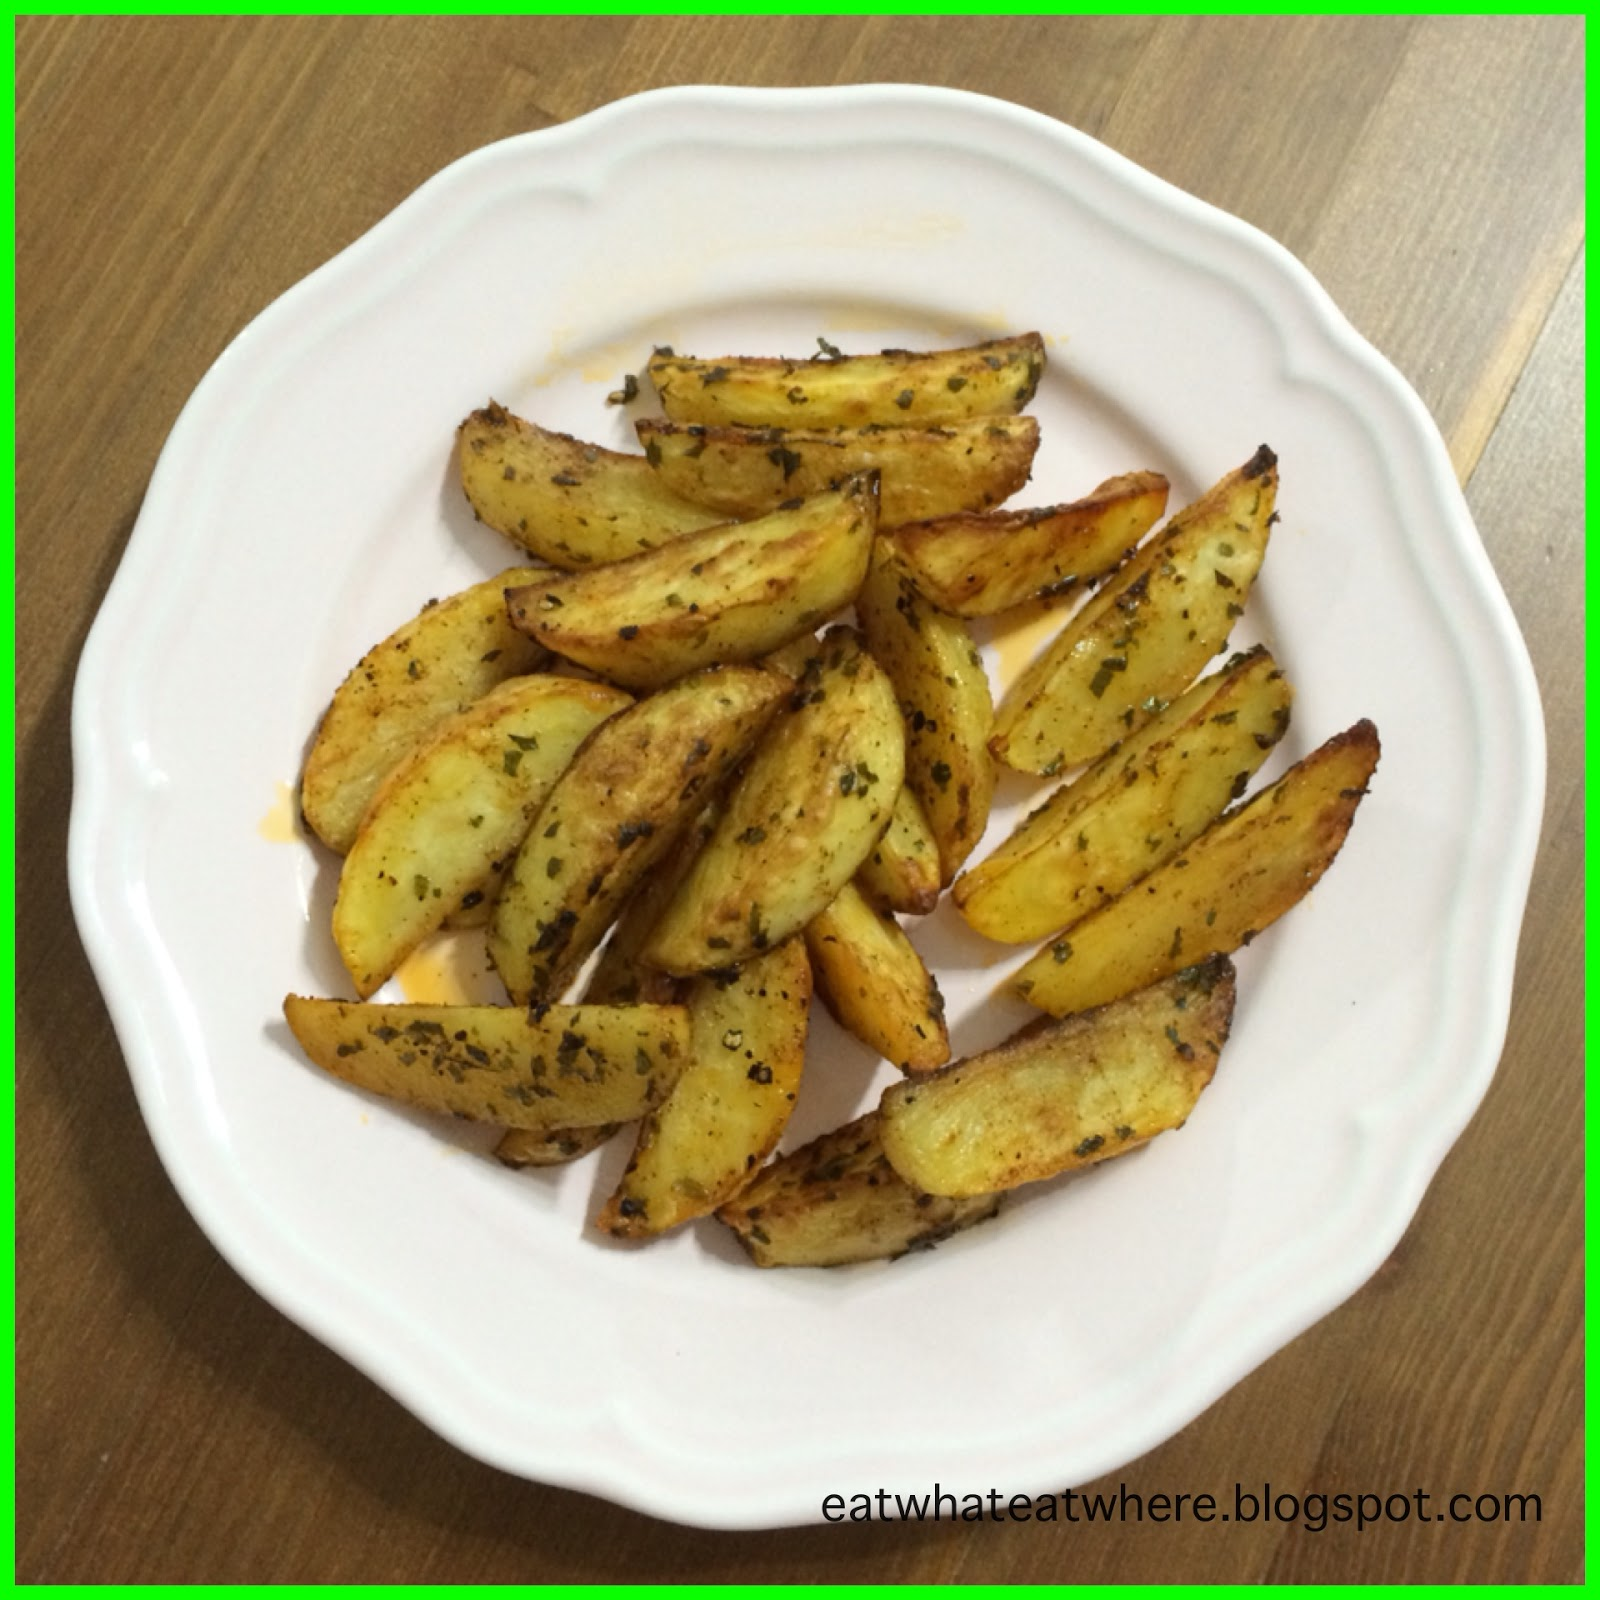 Eat What Eat Where Whats The Easiest Way To Cook Potatoes